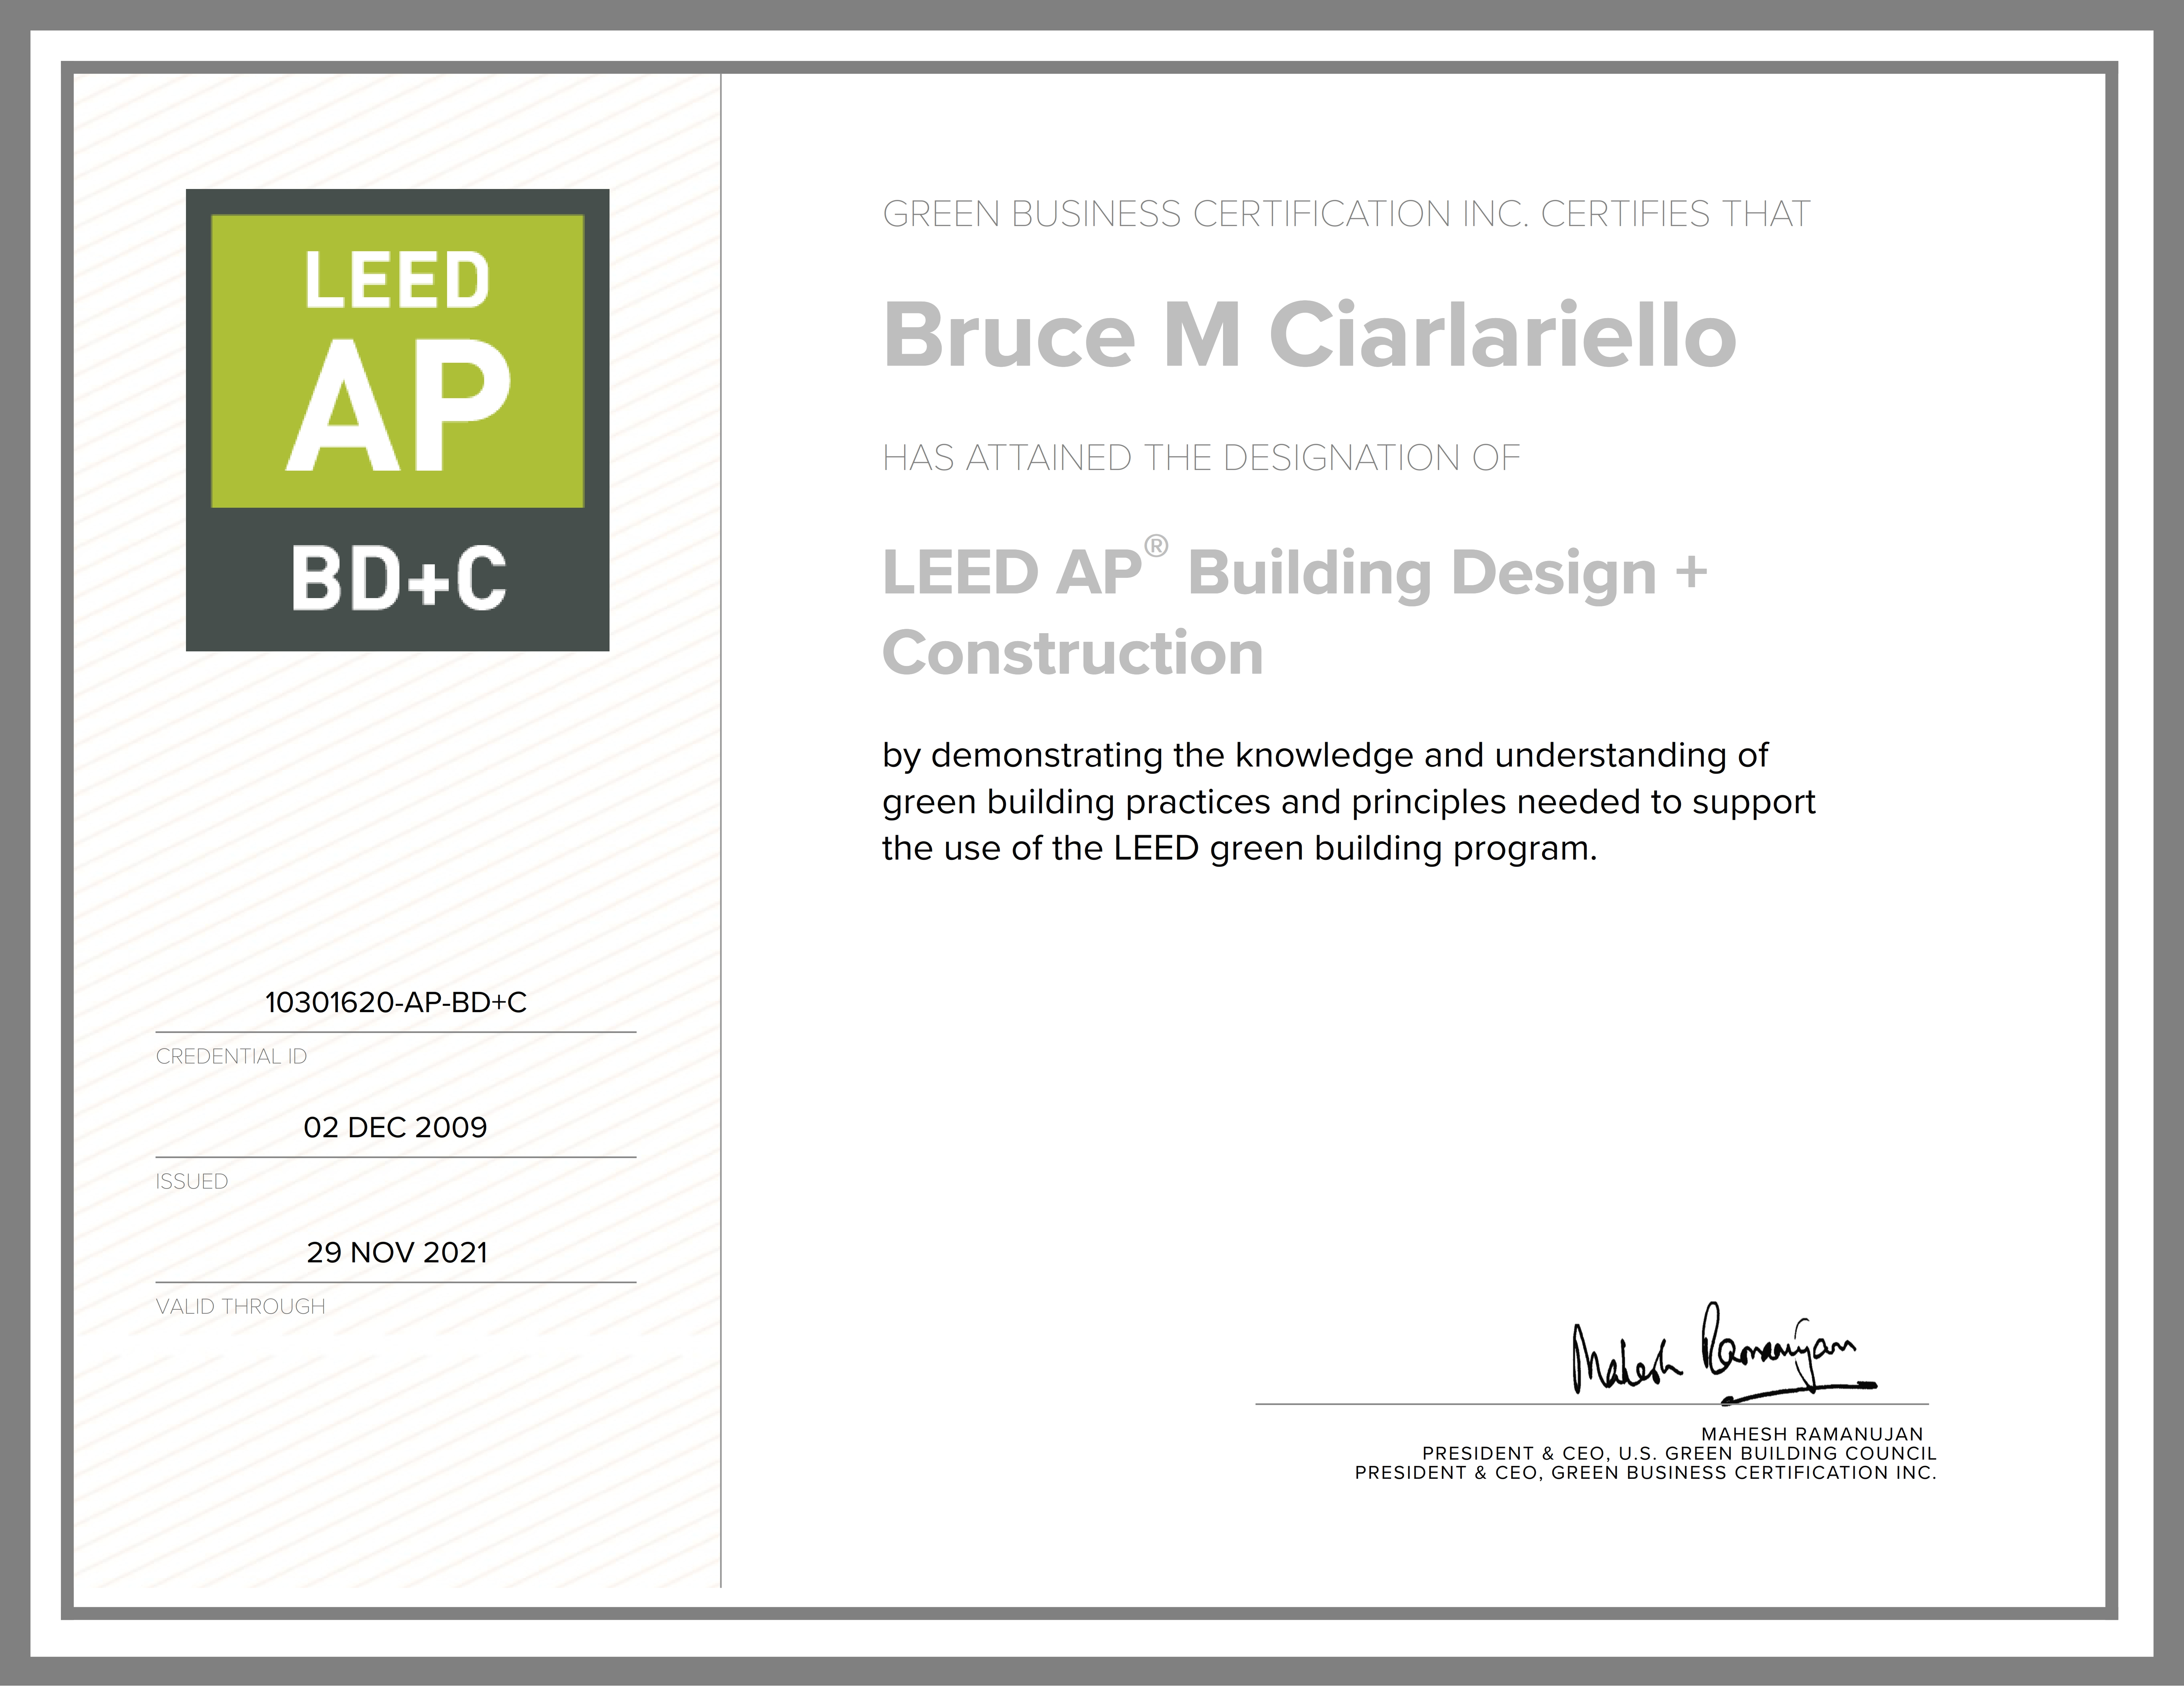 LEED AP Building Design & Construction